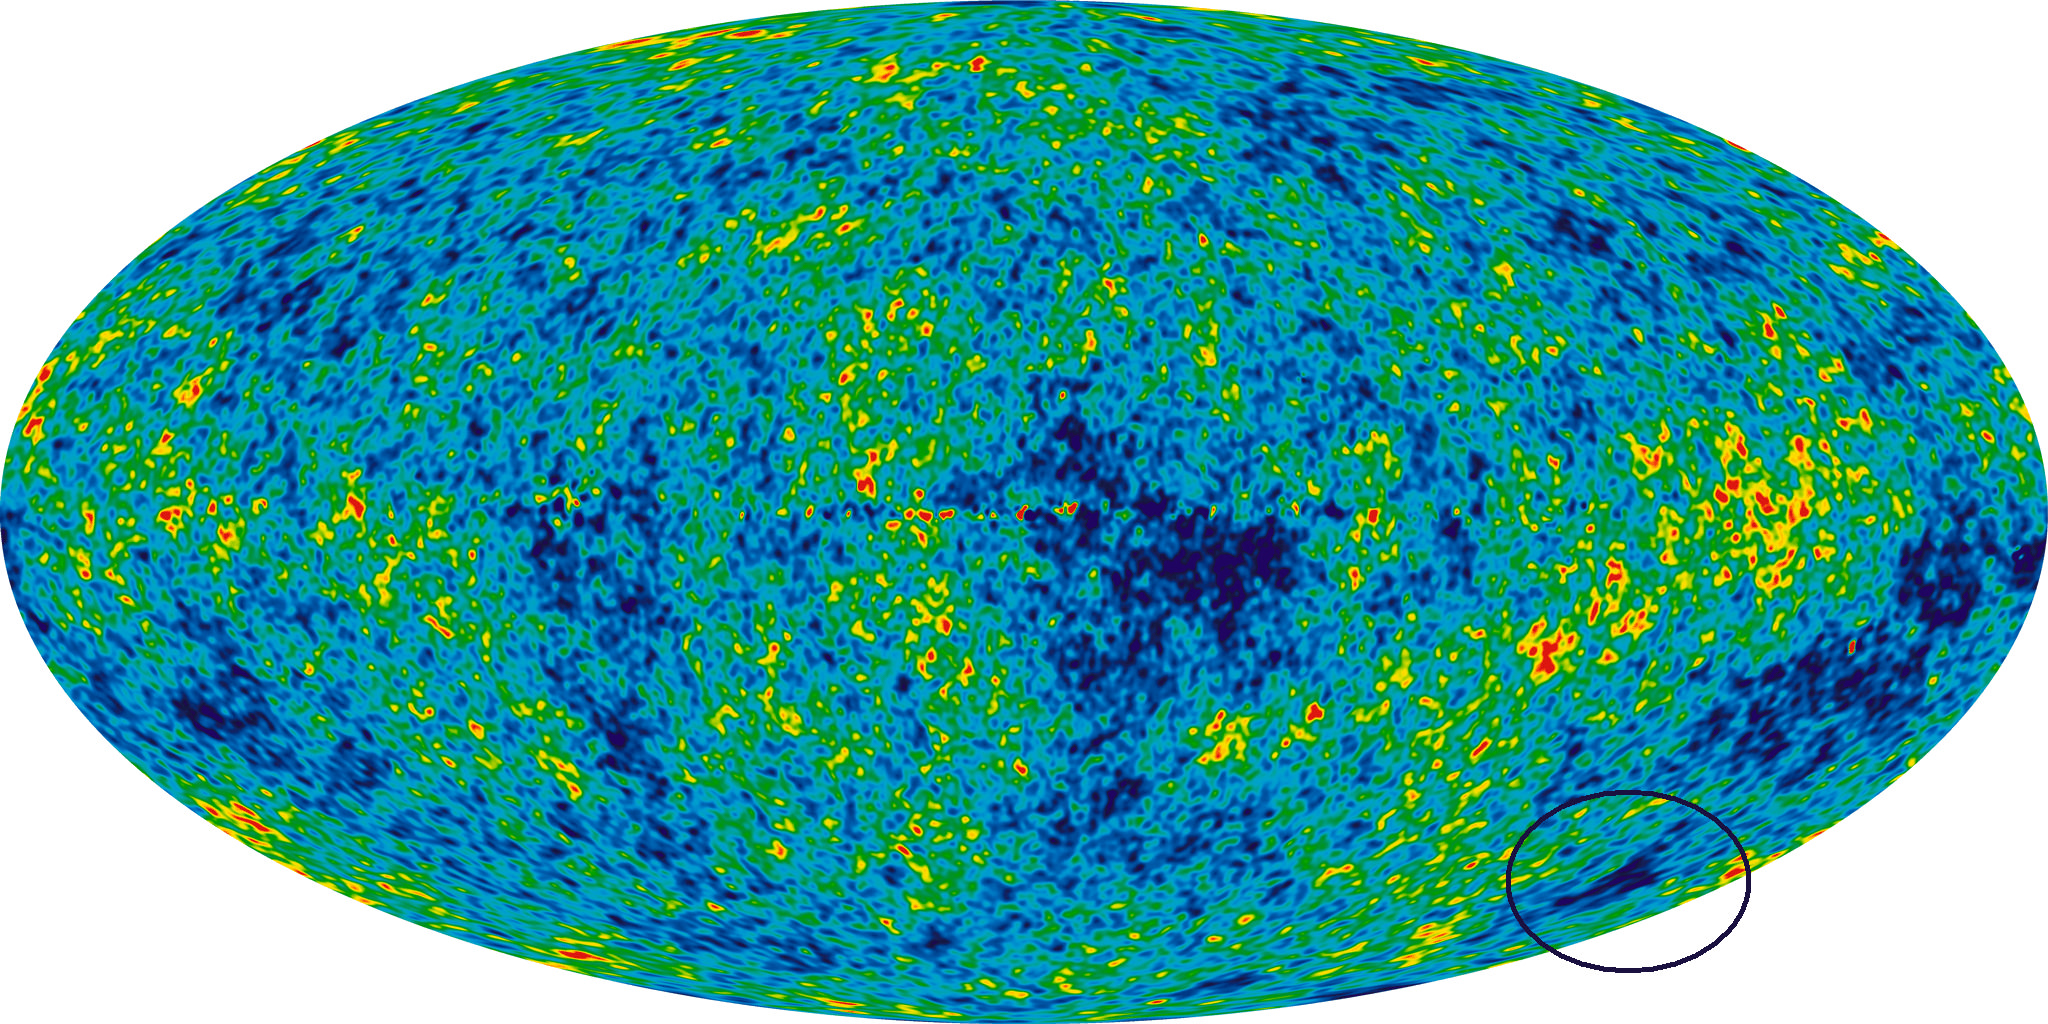 The cosmic microwave background: a snapshot of the universe at the time of decoupling